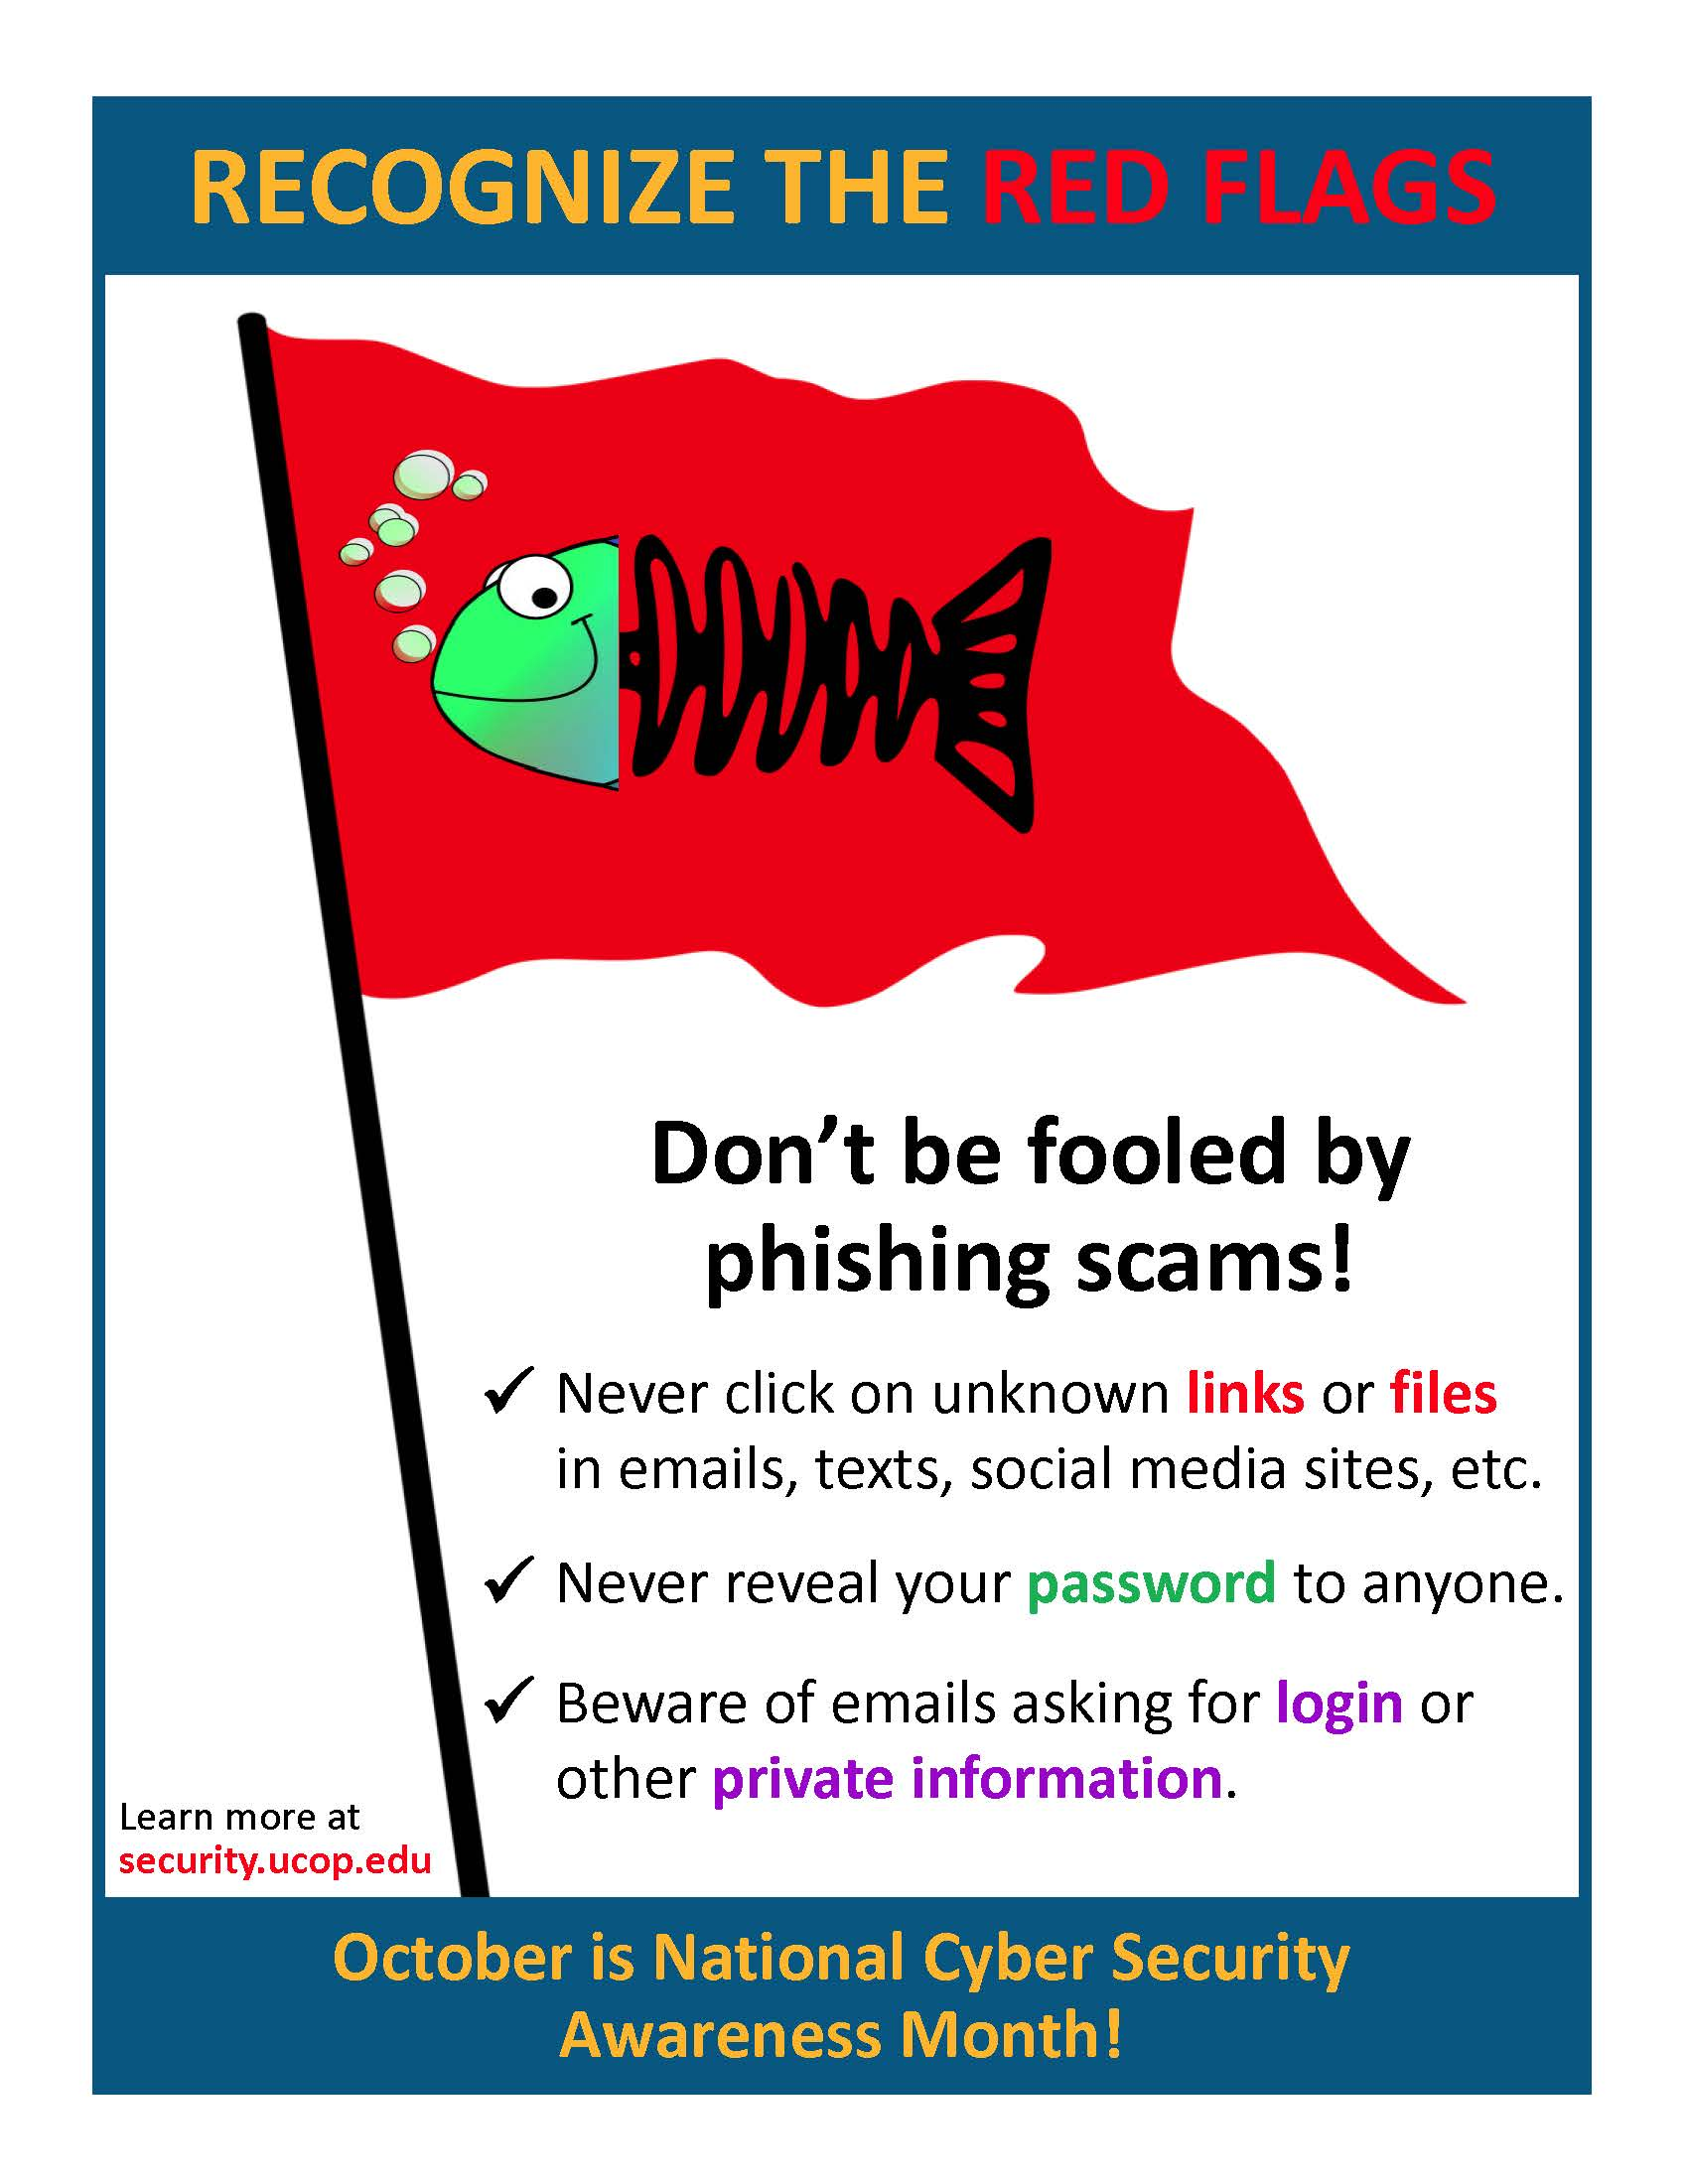 Poster: Know the red flags for phishing. Never click on unknown links or attachments. Never reveal your password. Beware of email asking for login or other private information.